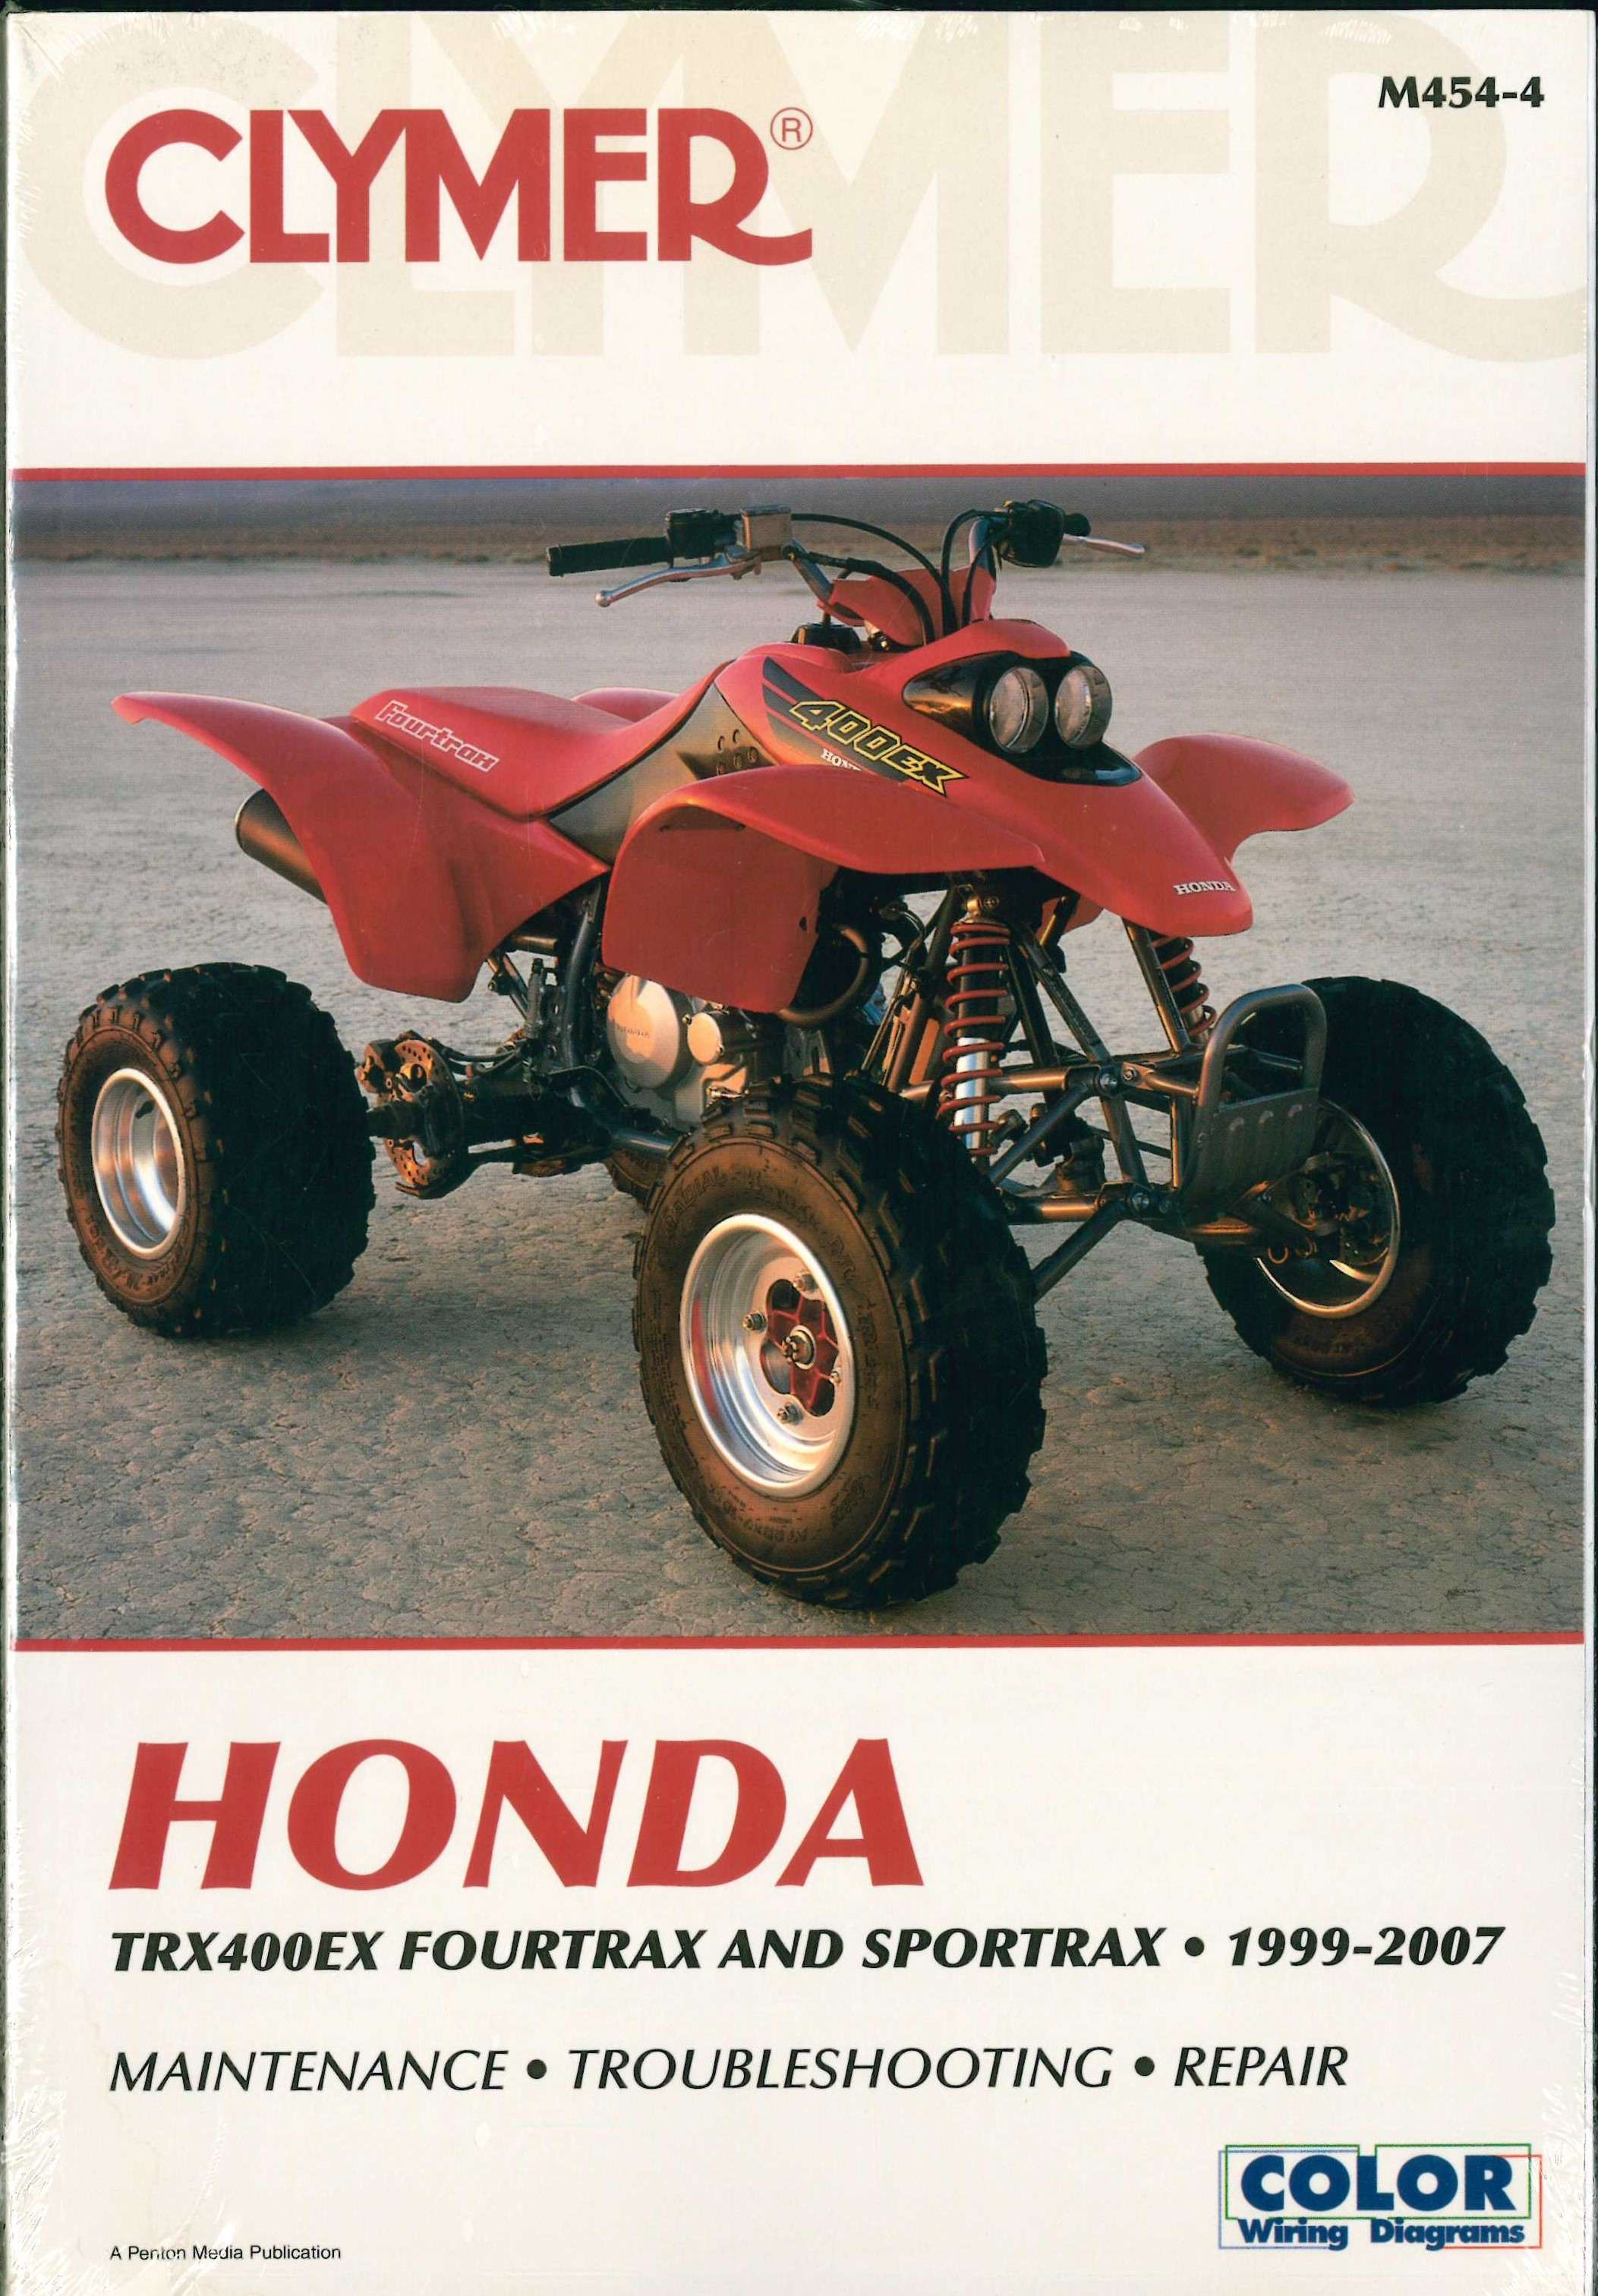 Honda 400ex Ignition Wiring Diagram Library 01 Engine 1999 2007 Trx400ex Fourtrax Sportrax Atv Repair Manual